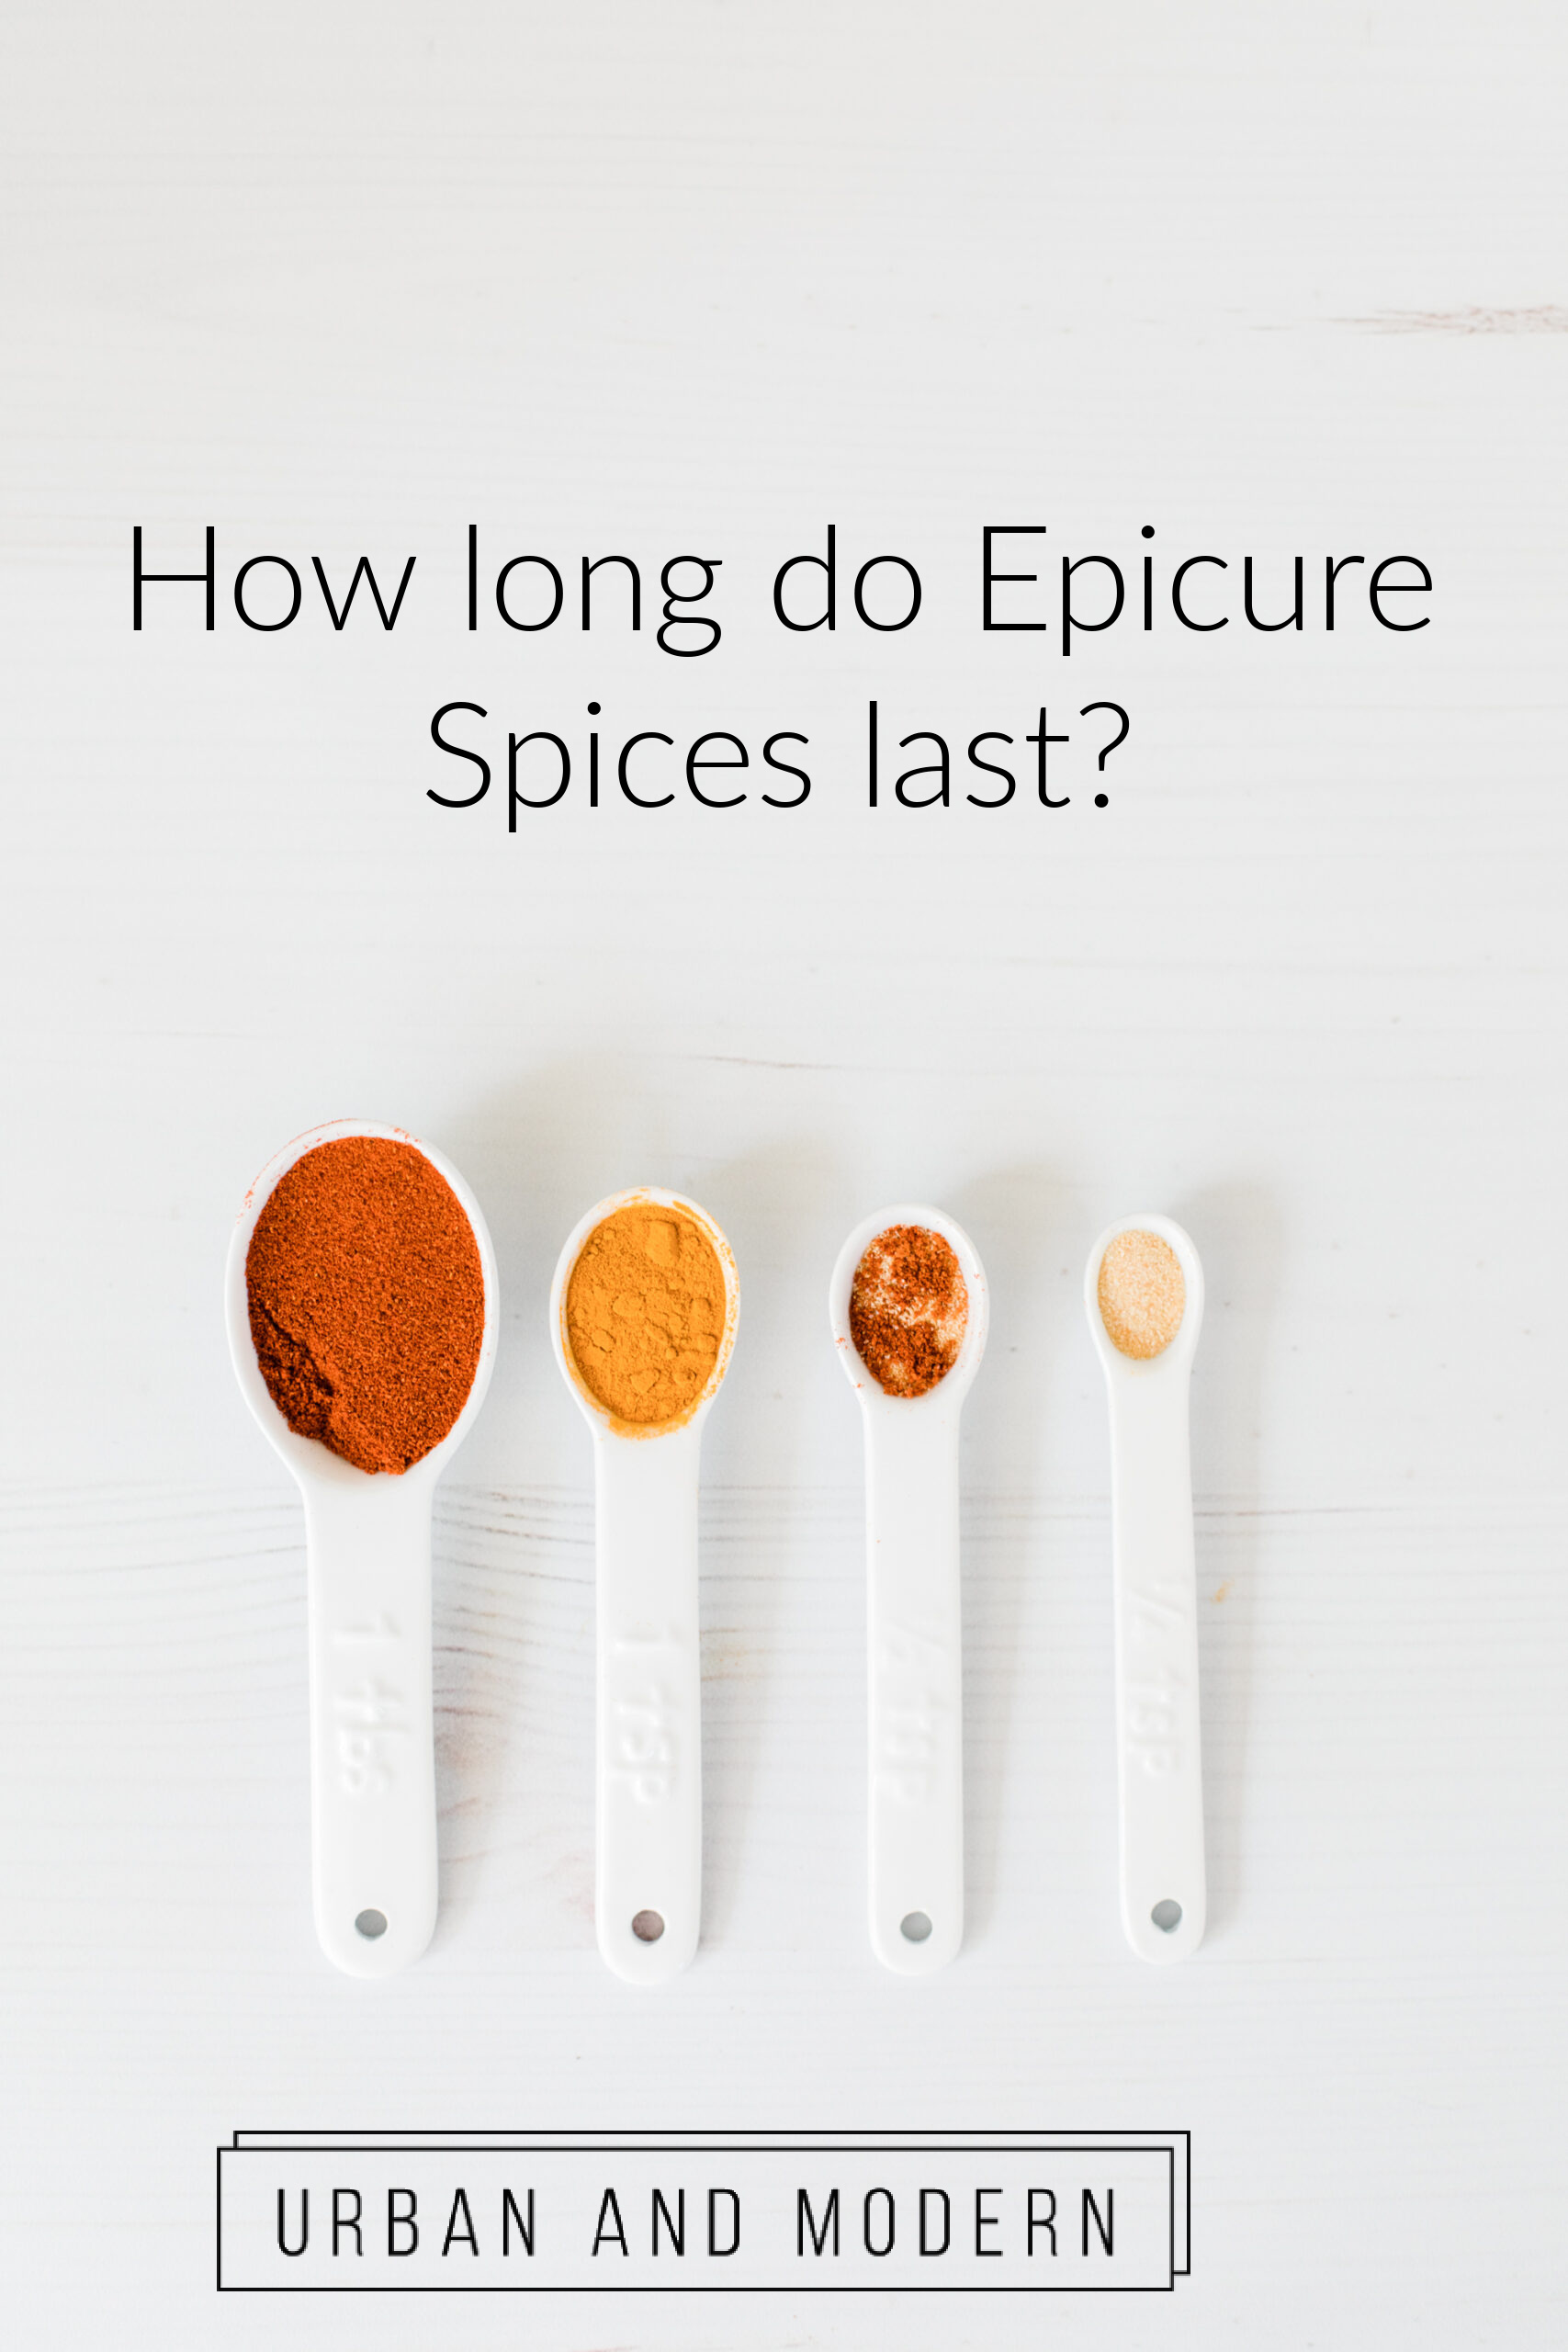 How long do Epicure spices last?